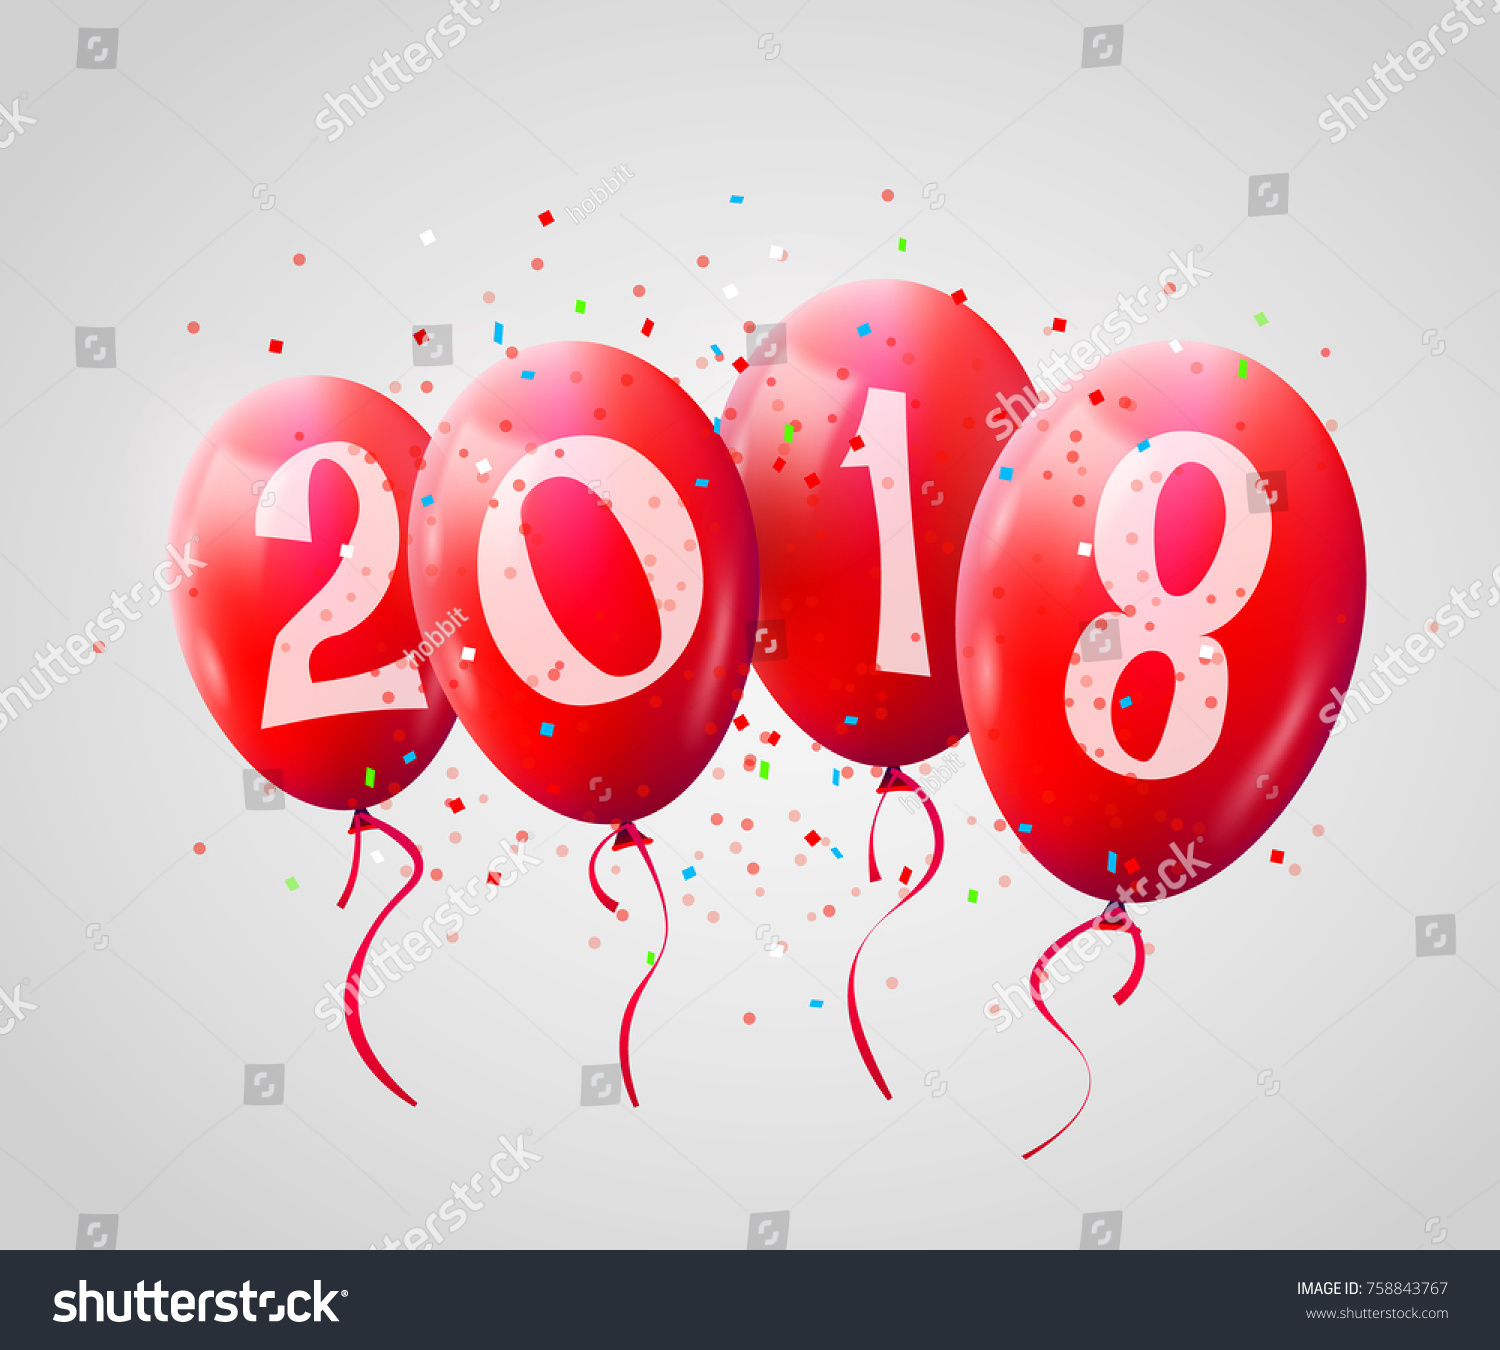 Greeting card 2018 christmas new year stock vector royalty free greeting card 2018 christmas or new year card with realistic red balloons and numbers on white m4hsunfo